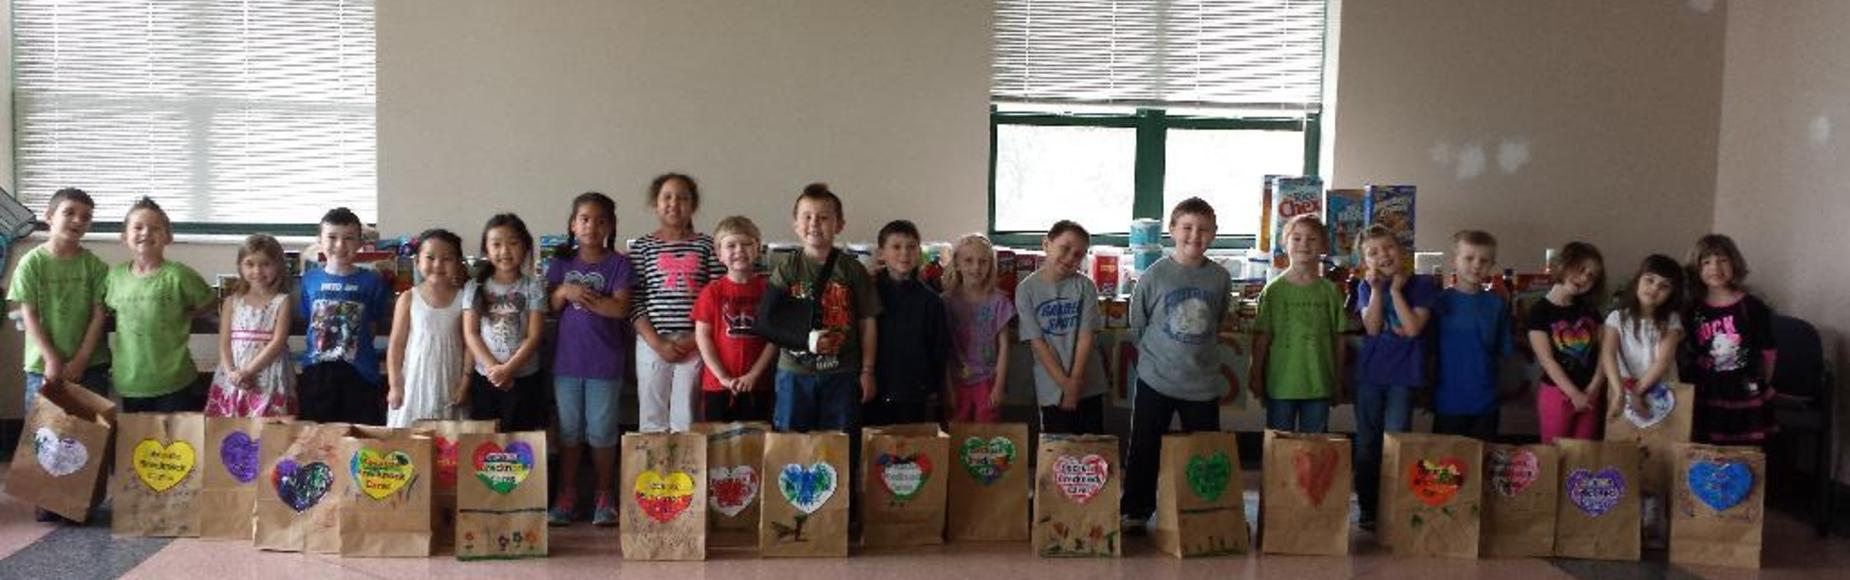 Students with Paper Bags Picture